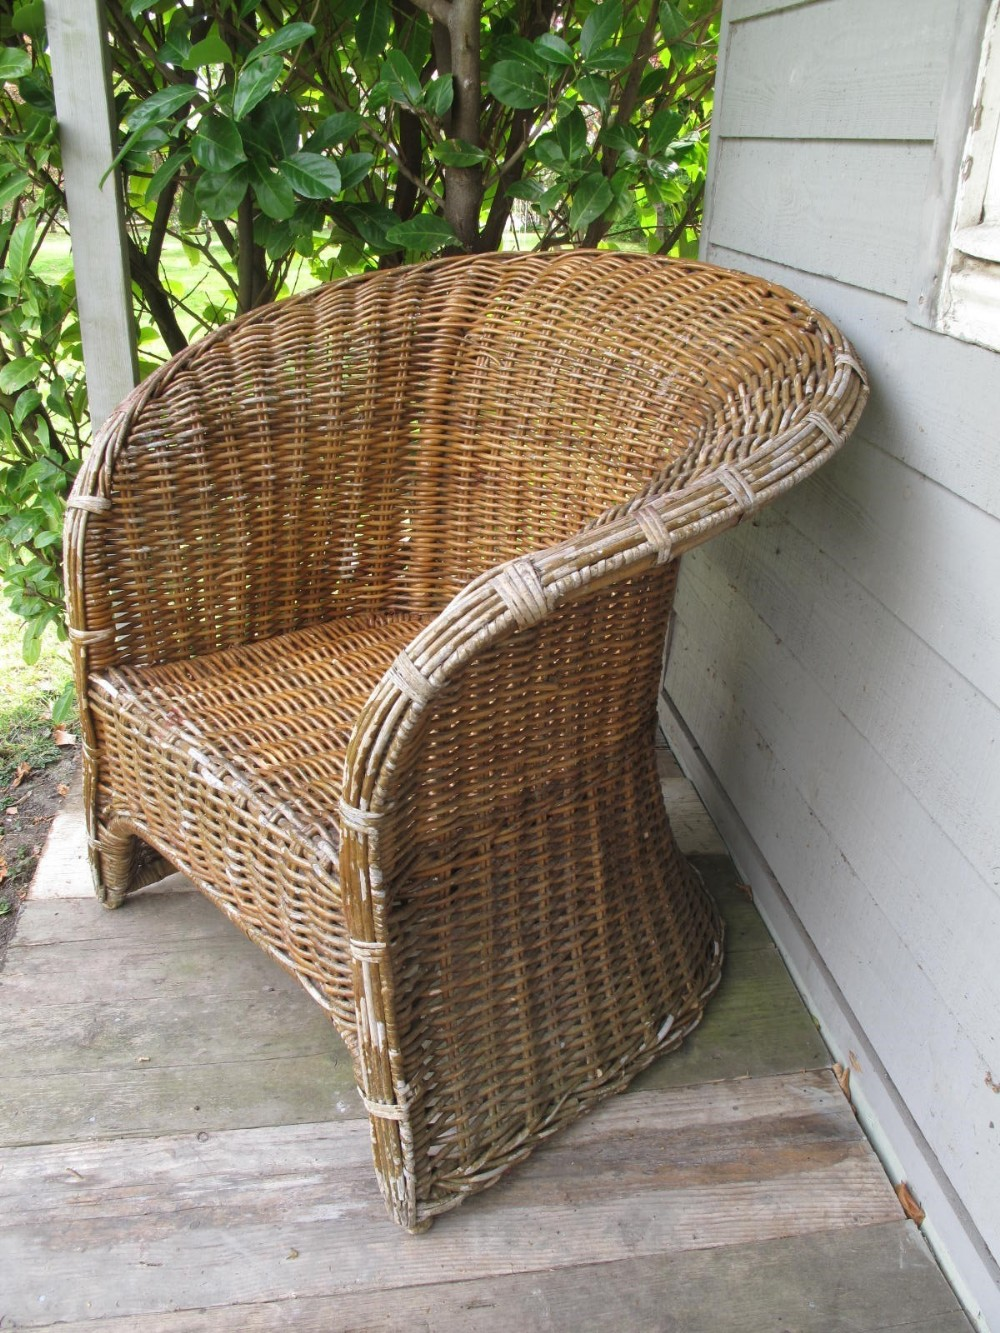 wicker chair for conservatory or garden terrace